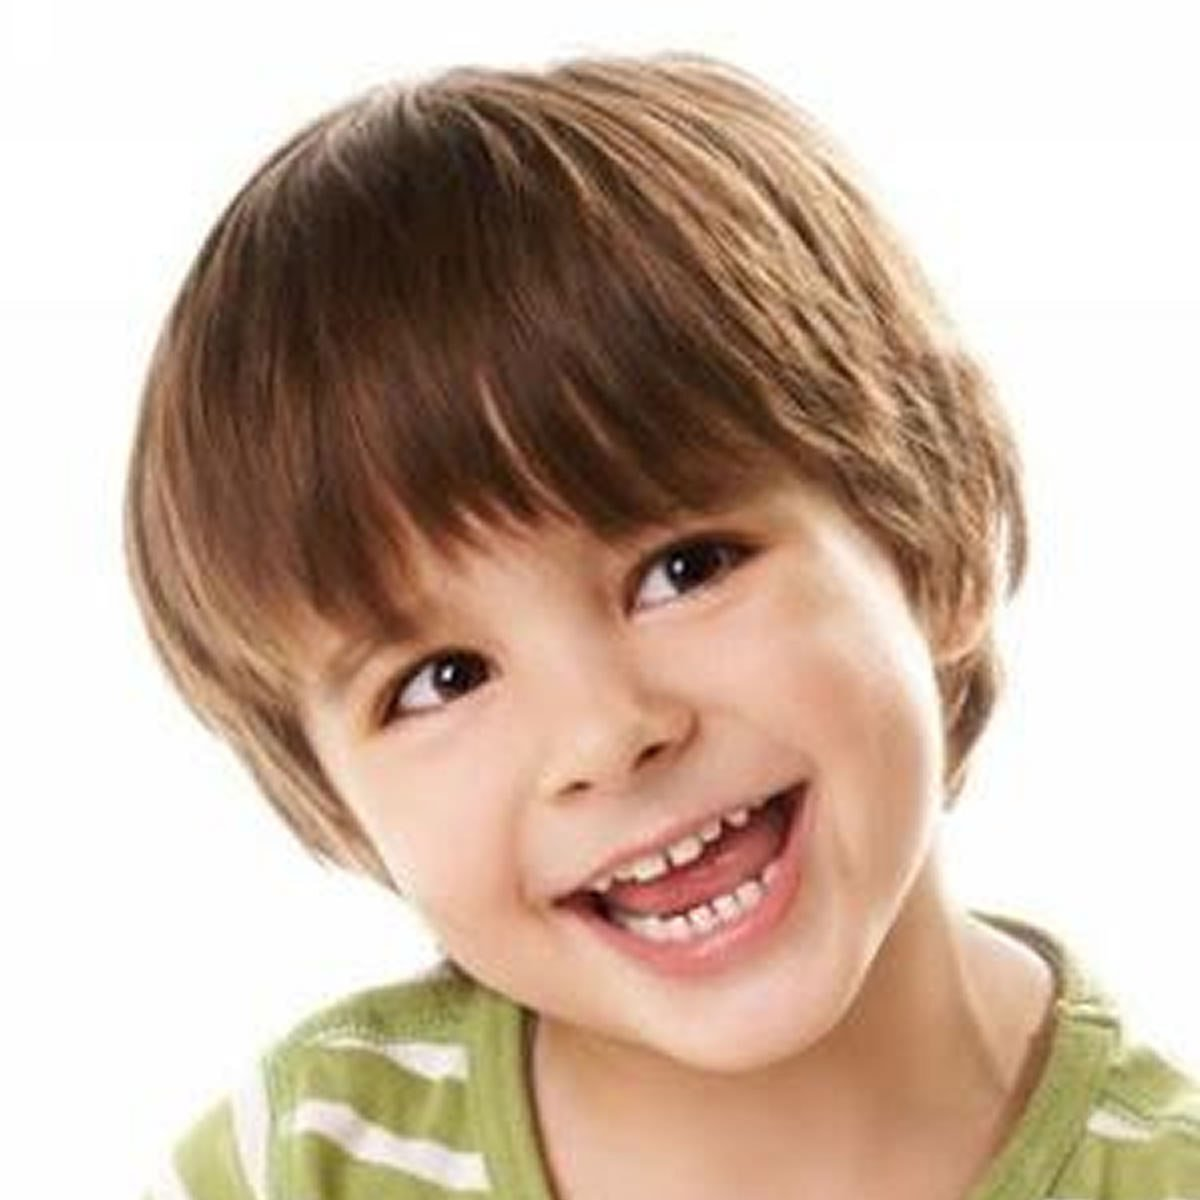 New Great Hairstyles And Haircuts Ideas For Little Boys 2018 Ideas With Pictures